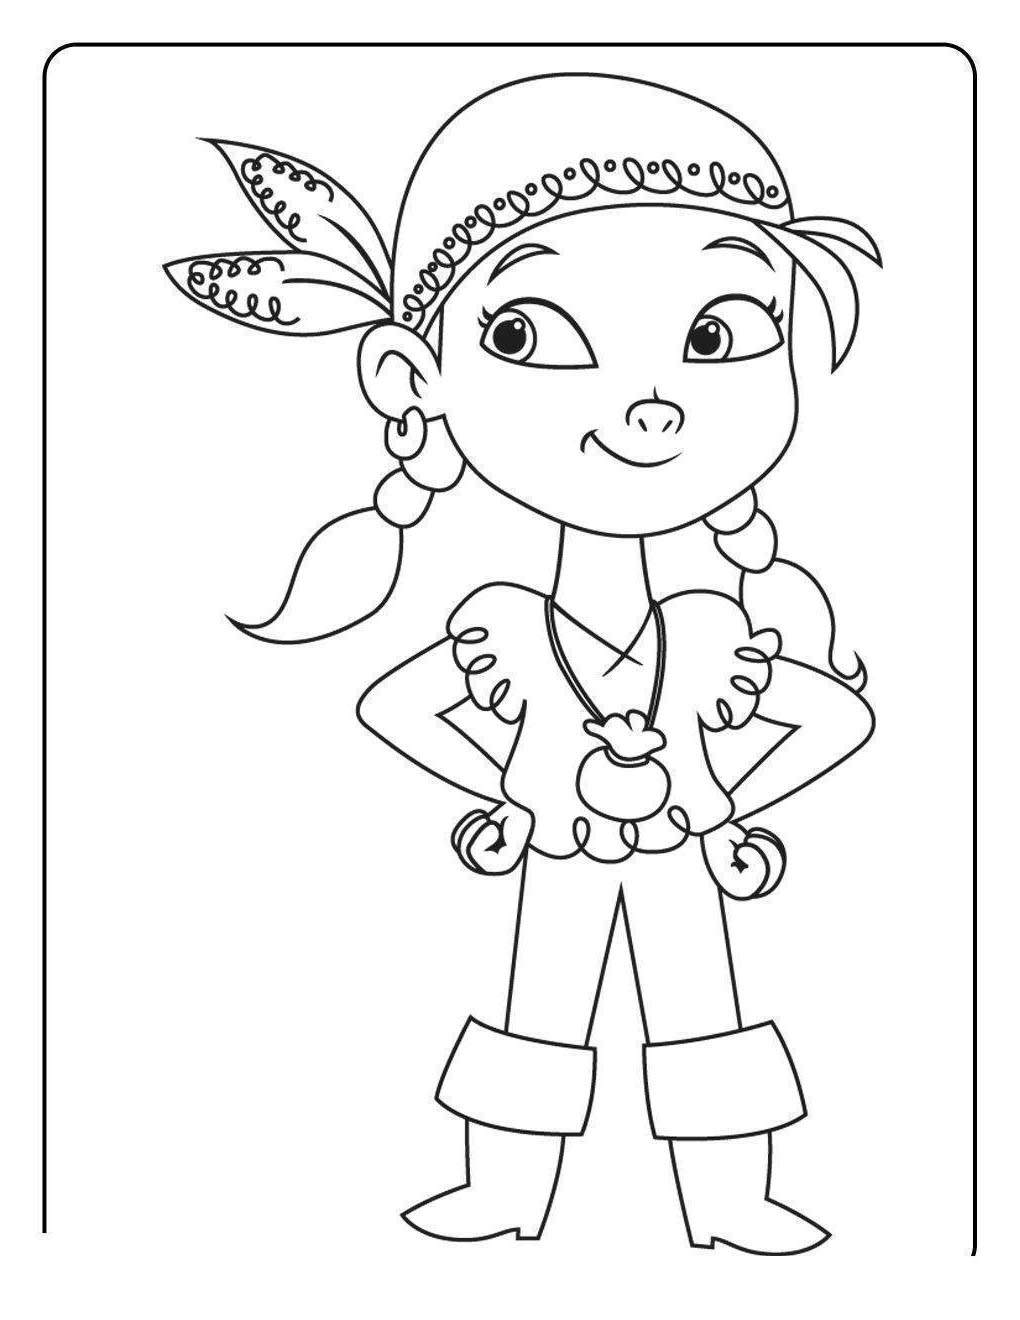 Free Jake And The Neverland Pirates Coloring Pages Never Land for Toddlers printable